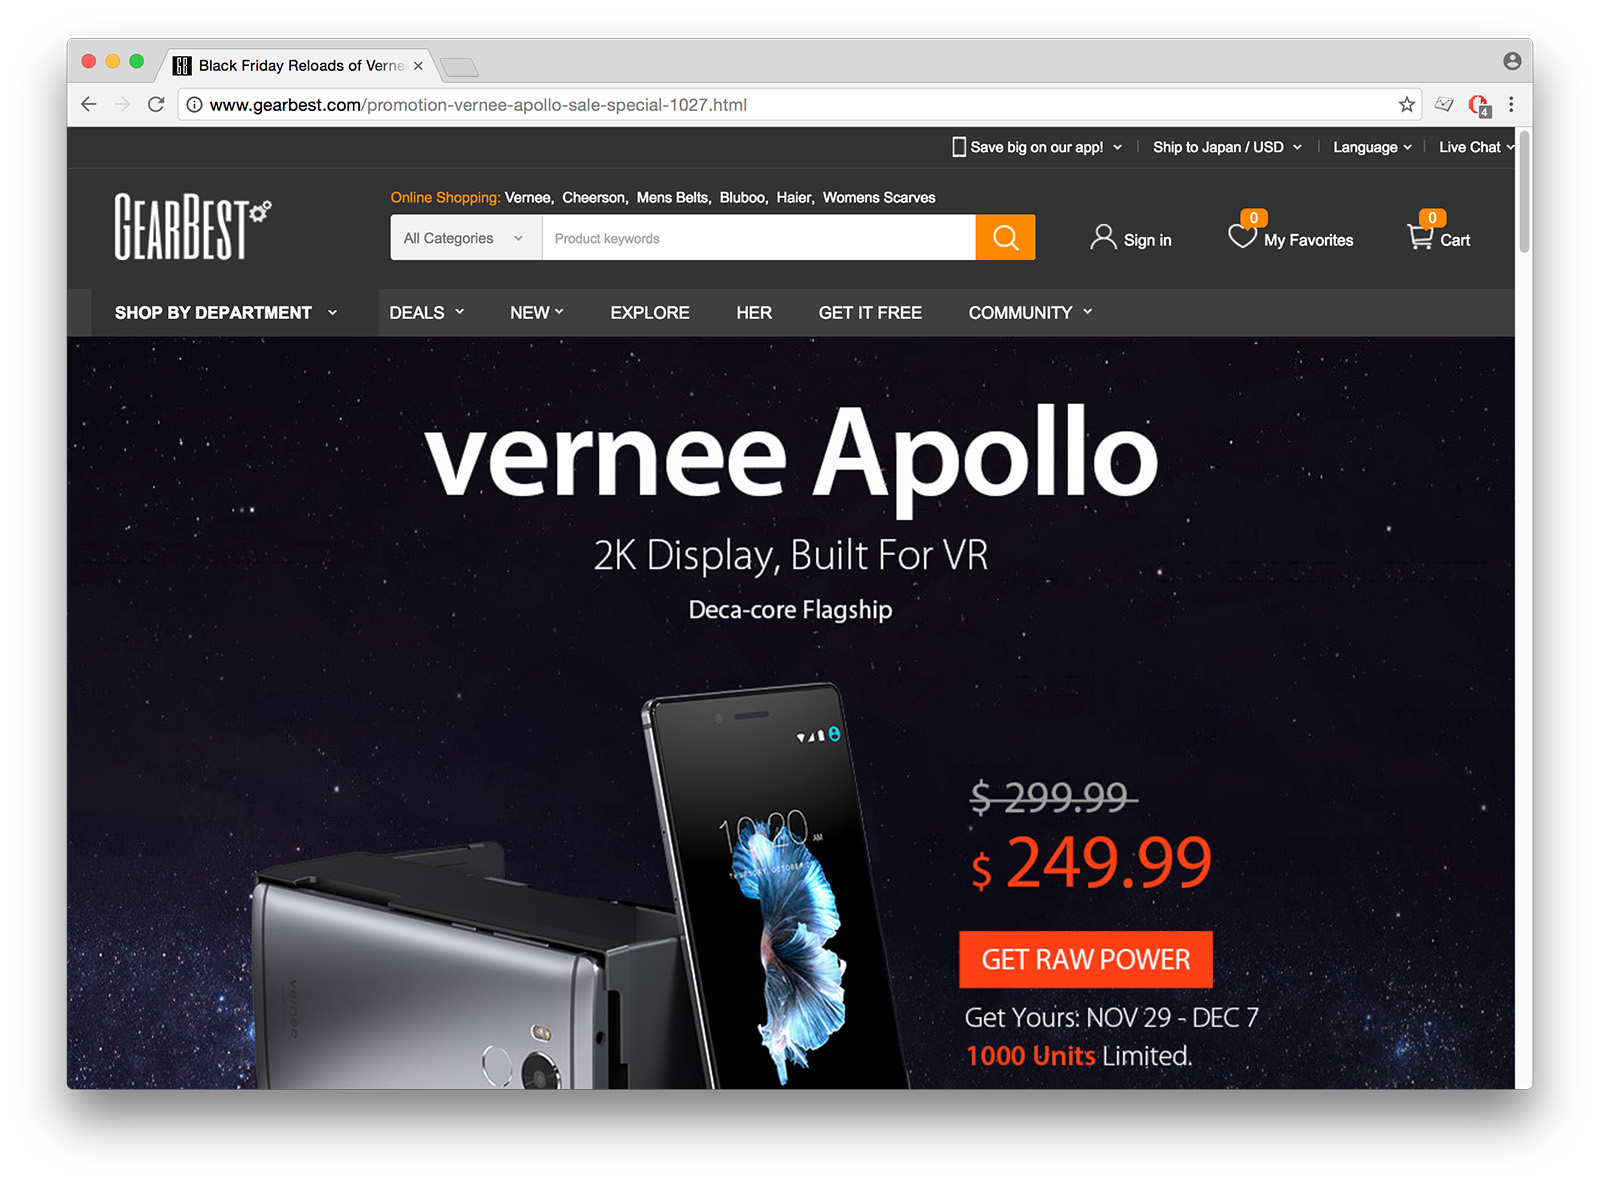 Black Friday Reloads of Vernee Apollo 4G Phablet Just $249.99 - GearBest.com